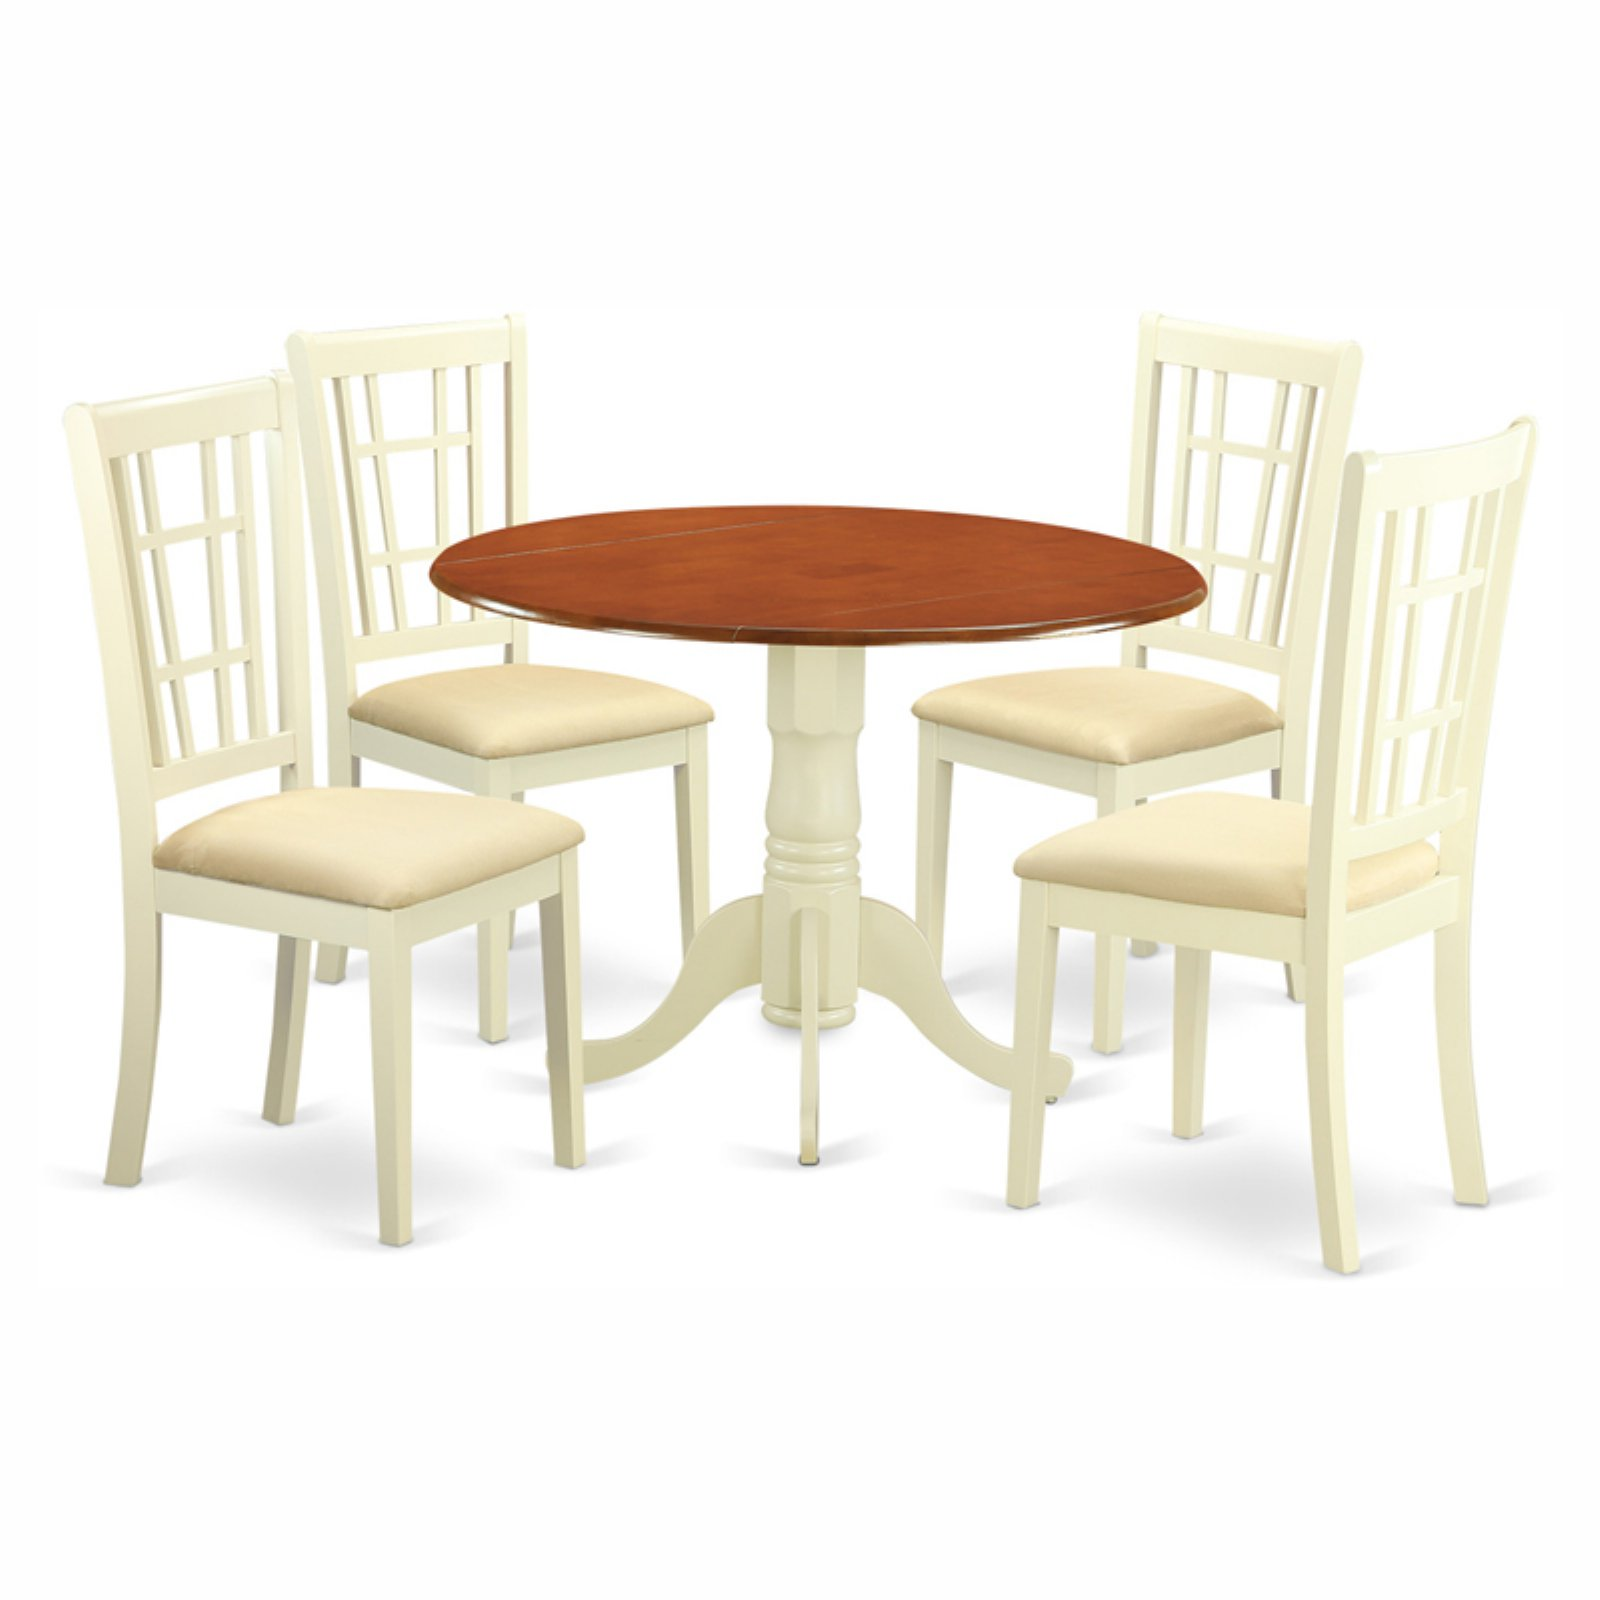 East West Furniture Dublin 5 Piece Drop Leaf Dining Table Set with Nicoli Microfiber Seat Chairs